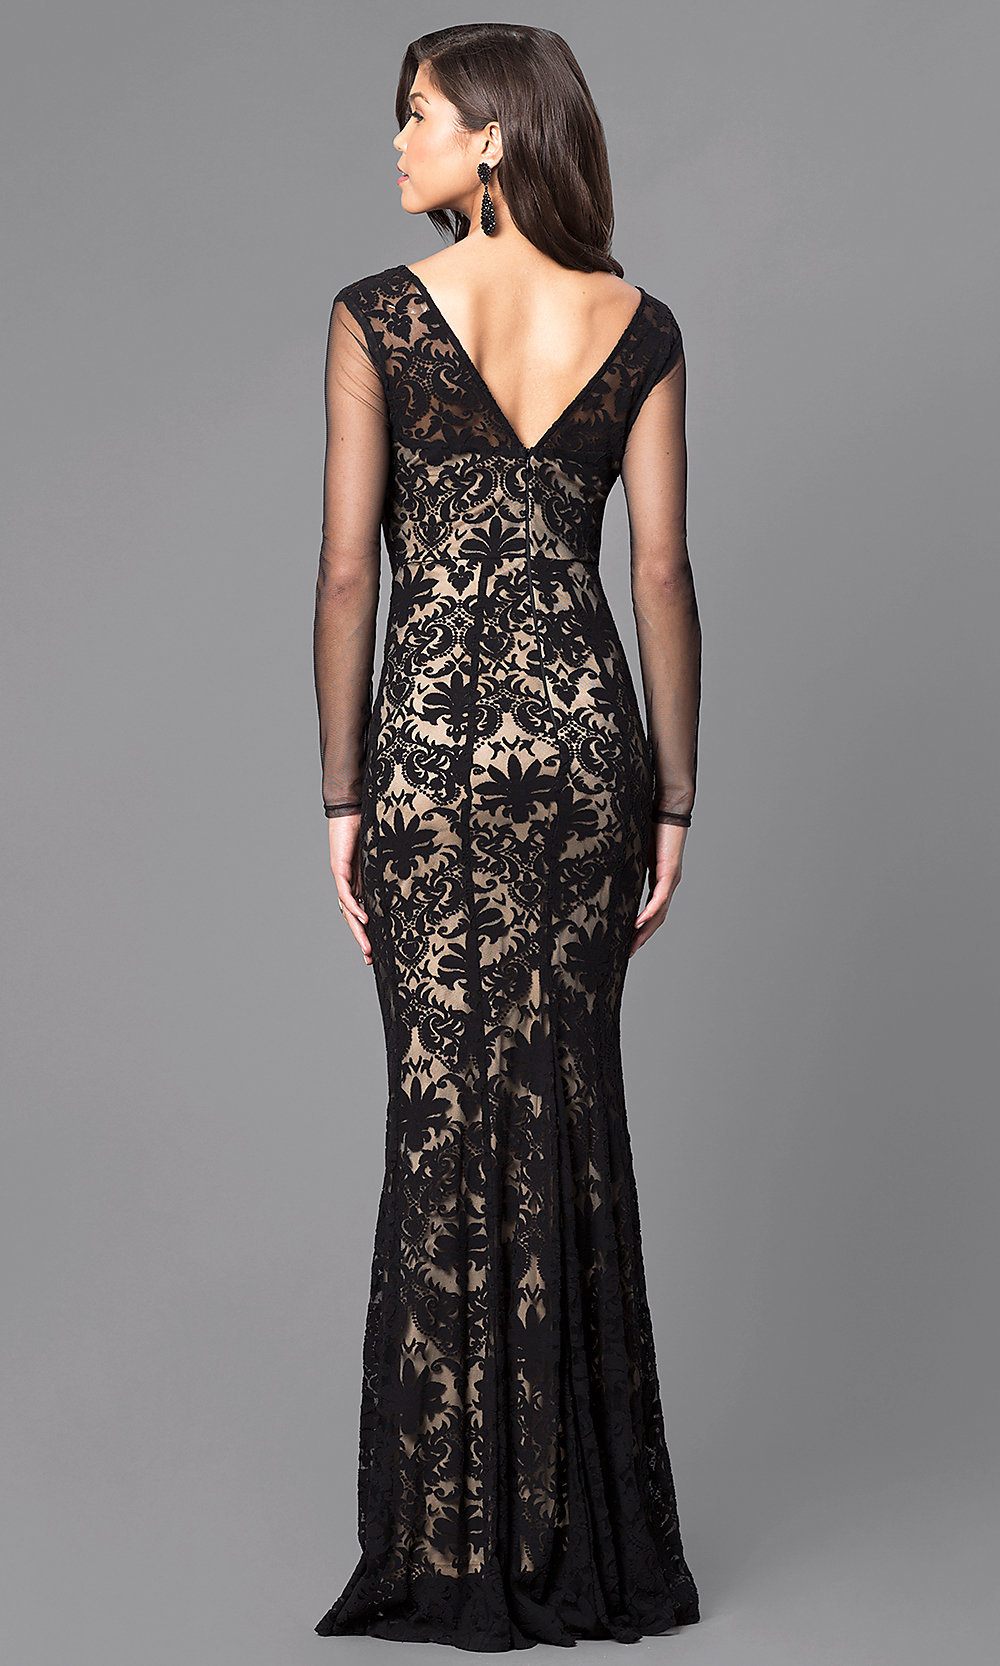 Black and Nude Sleeved Long Lace Prom Dress-PromGirl